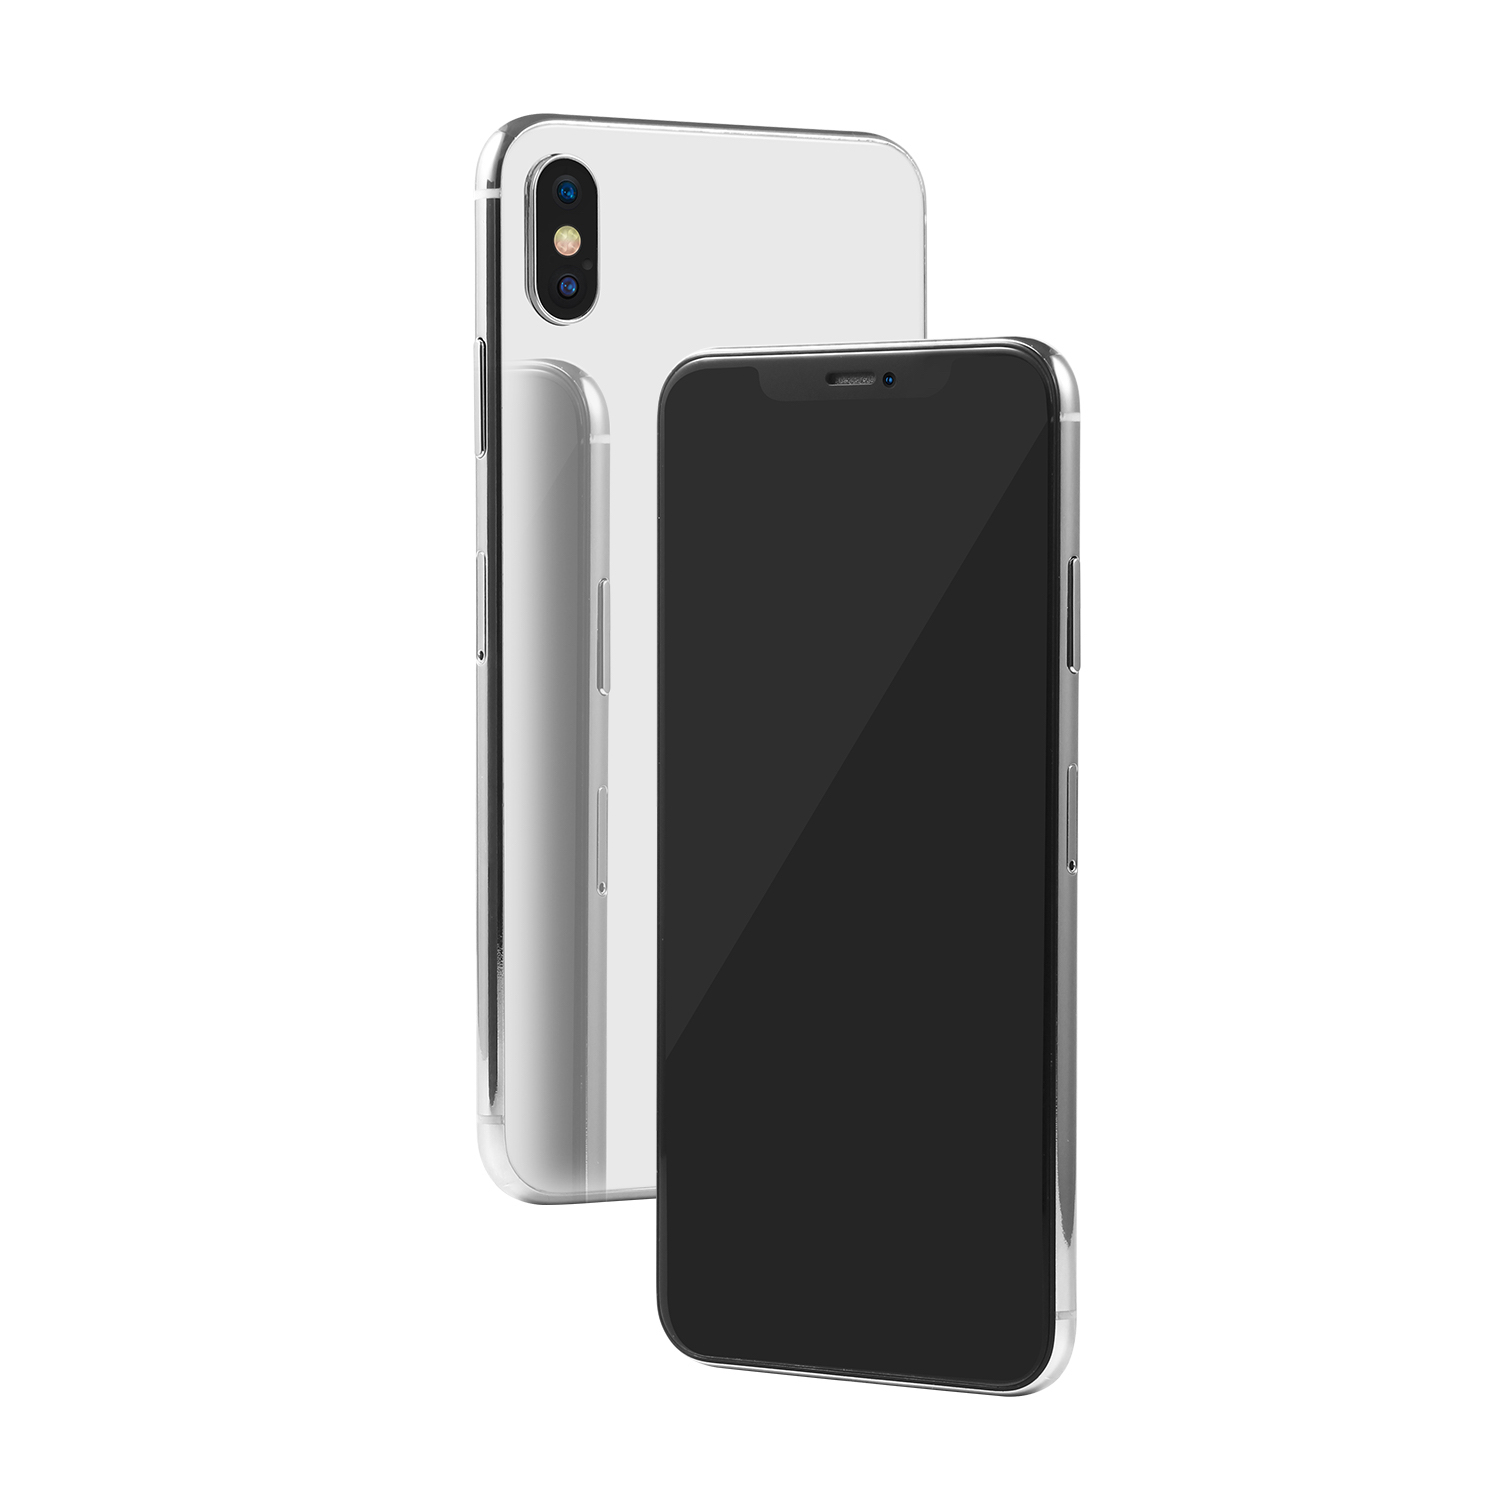 Non-Working 1:1 Fake Metal Phone Display Model Mould Dummy For IPhone 11 Pro Max Xs Max 8 7 6s Plus Dummy Case Display Toy